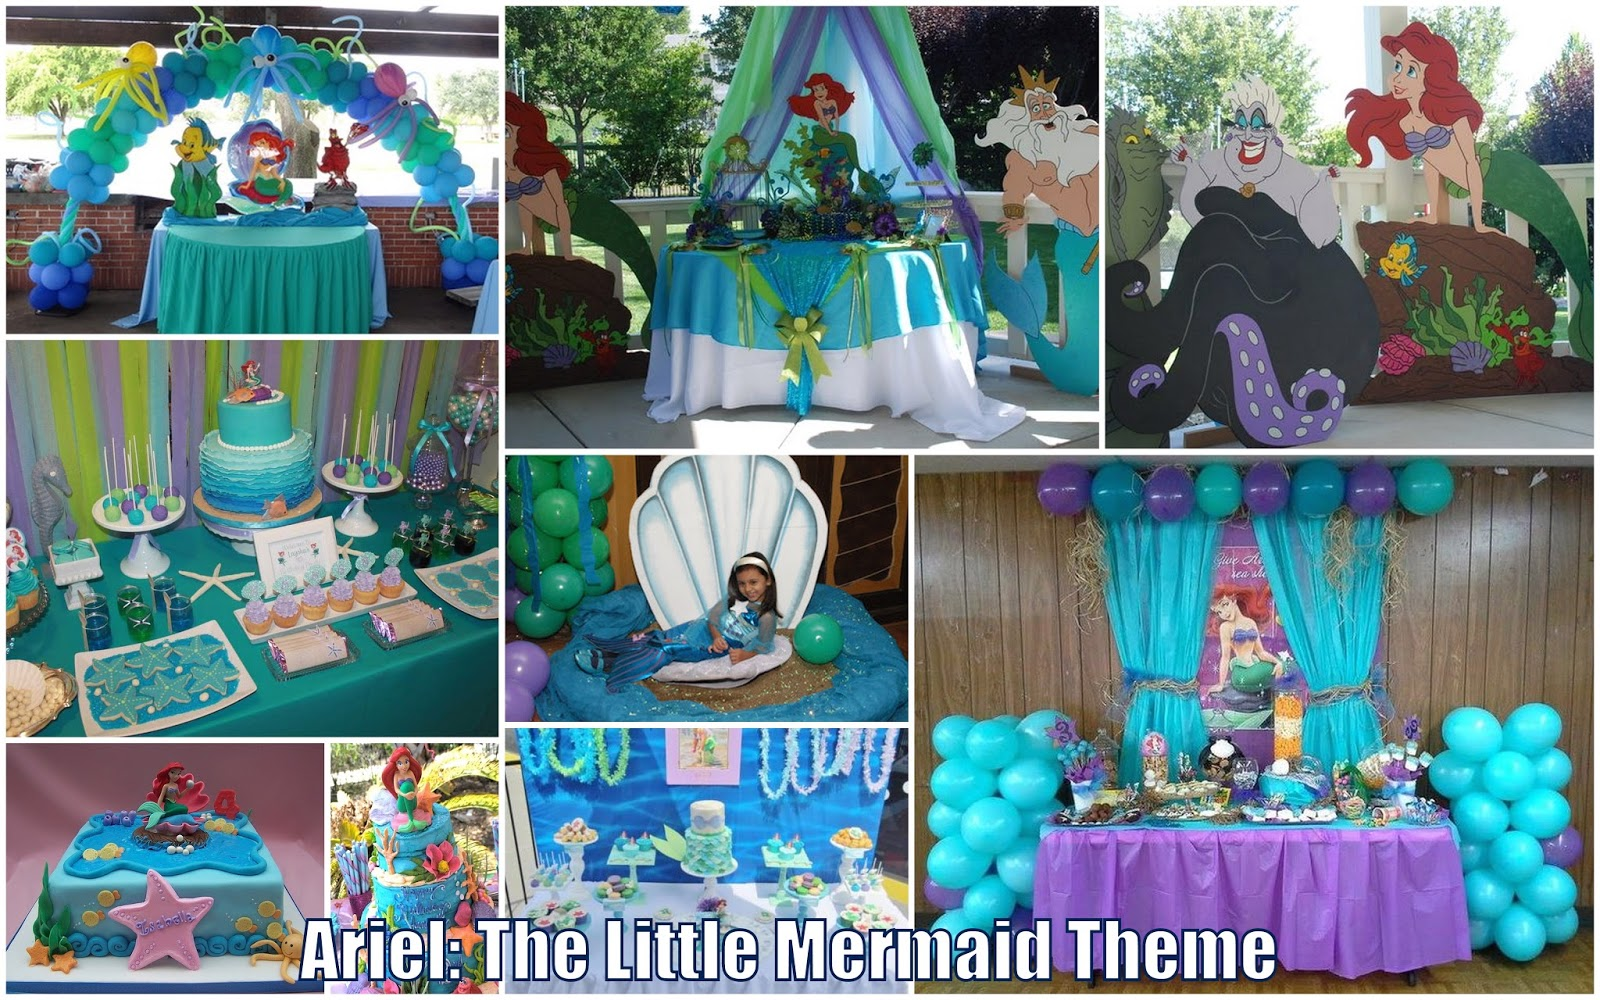 Ariel the little mermaid theme for reaux 39 s christening for Ariel decoration party